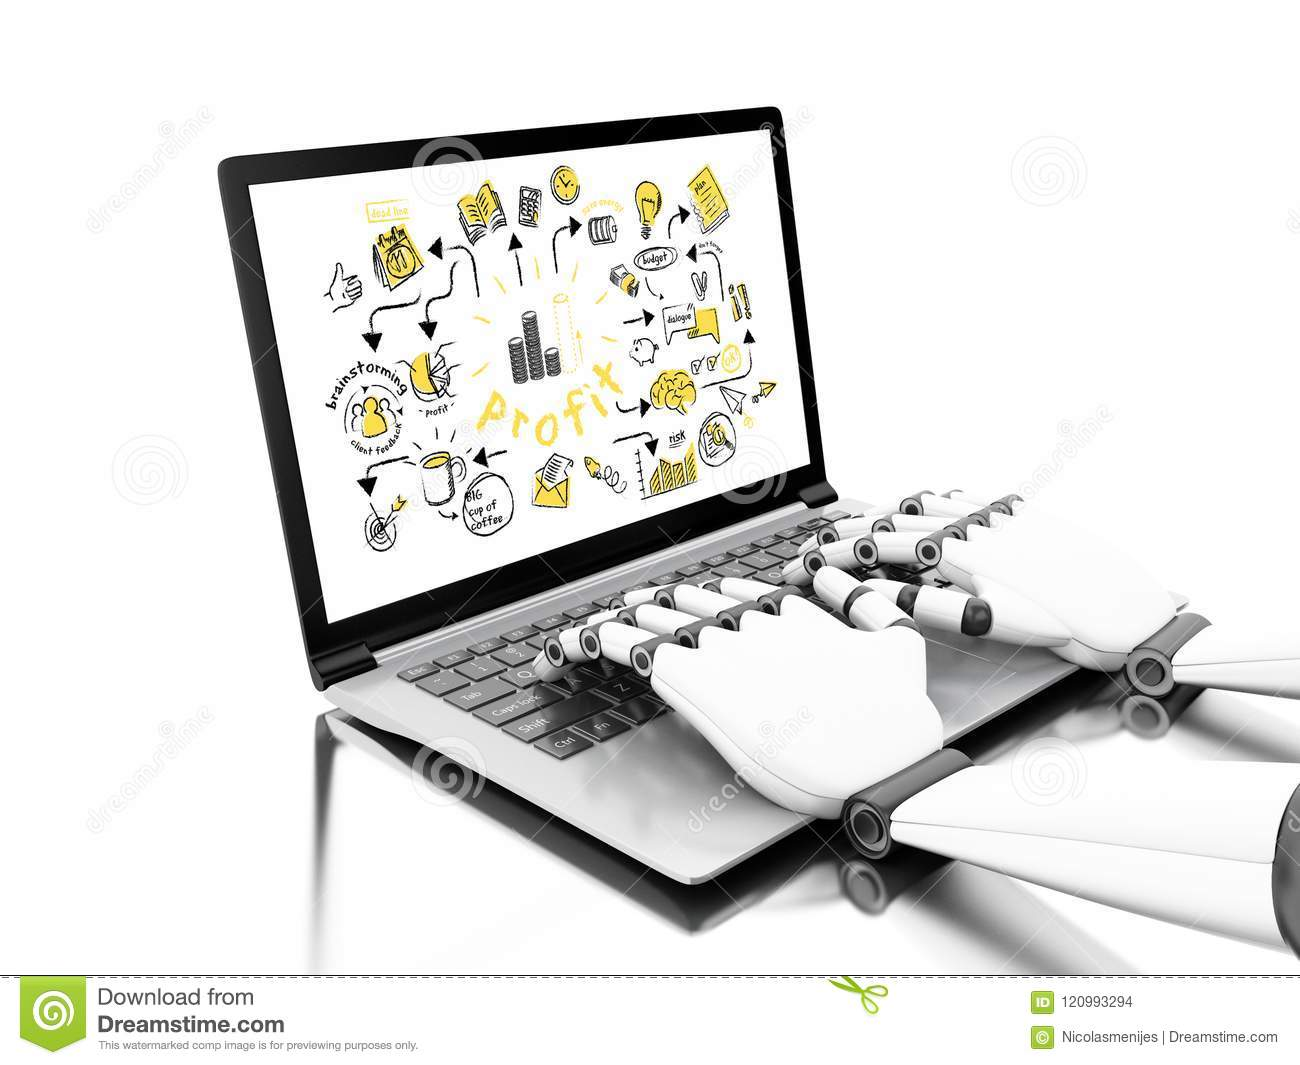 3d illustration. Robotic hands typing on a laptop with business